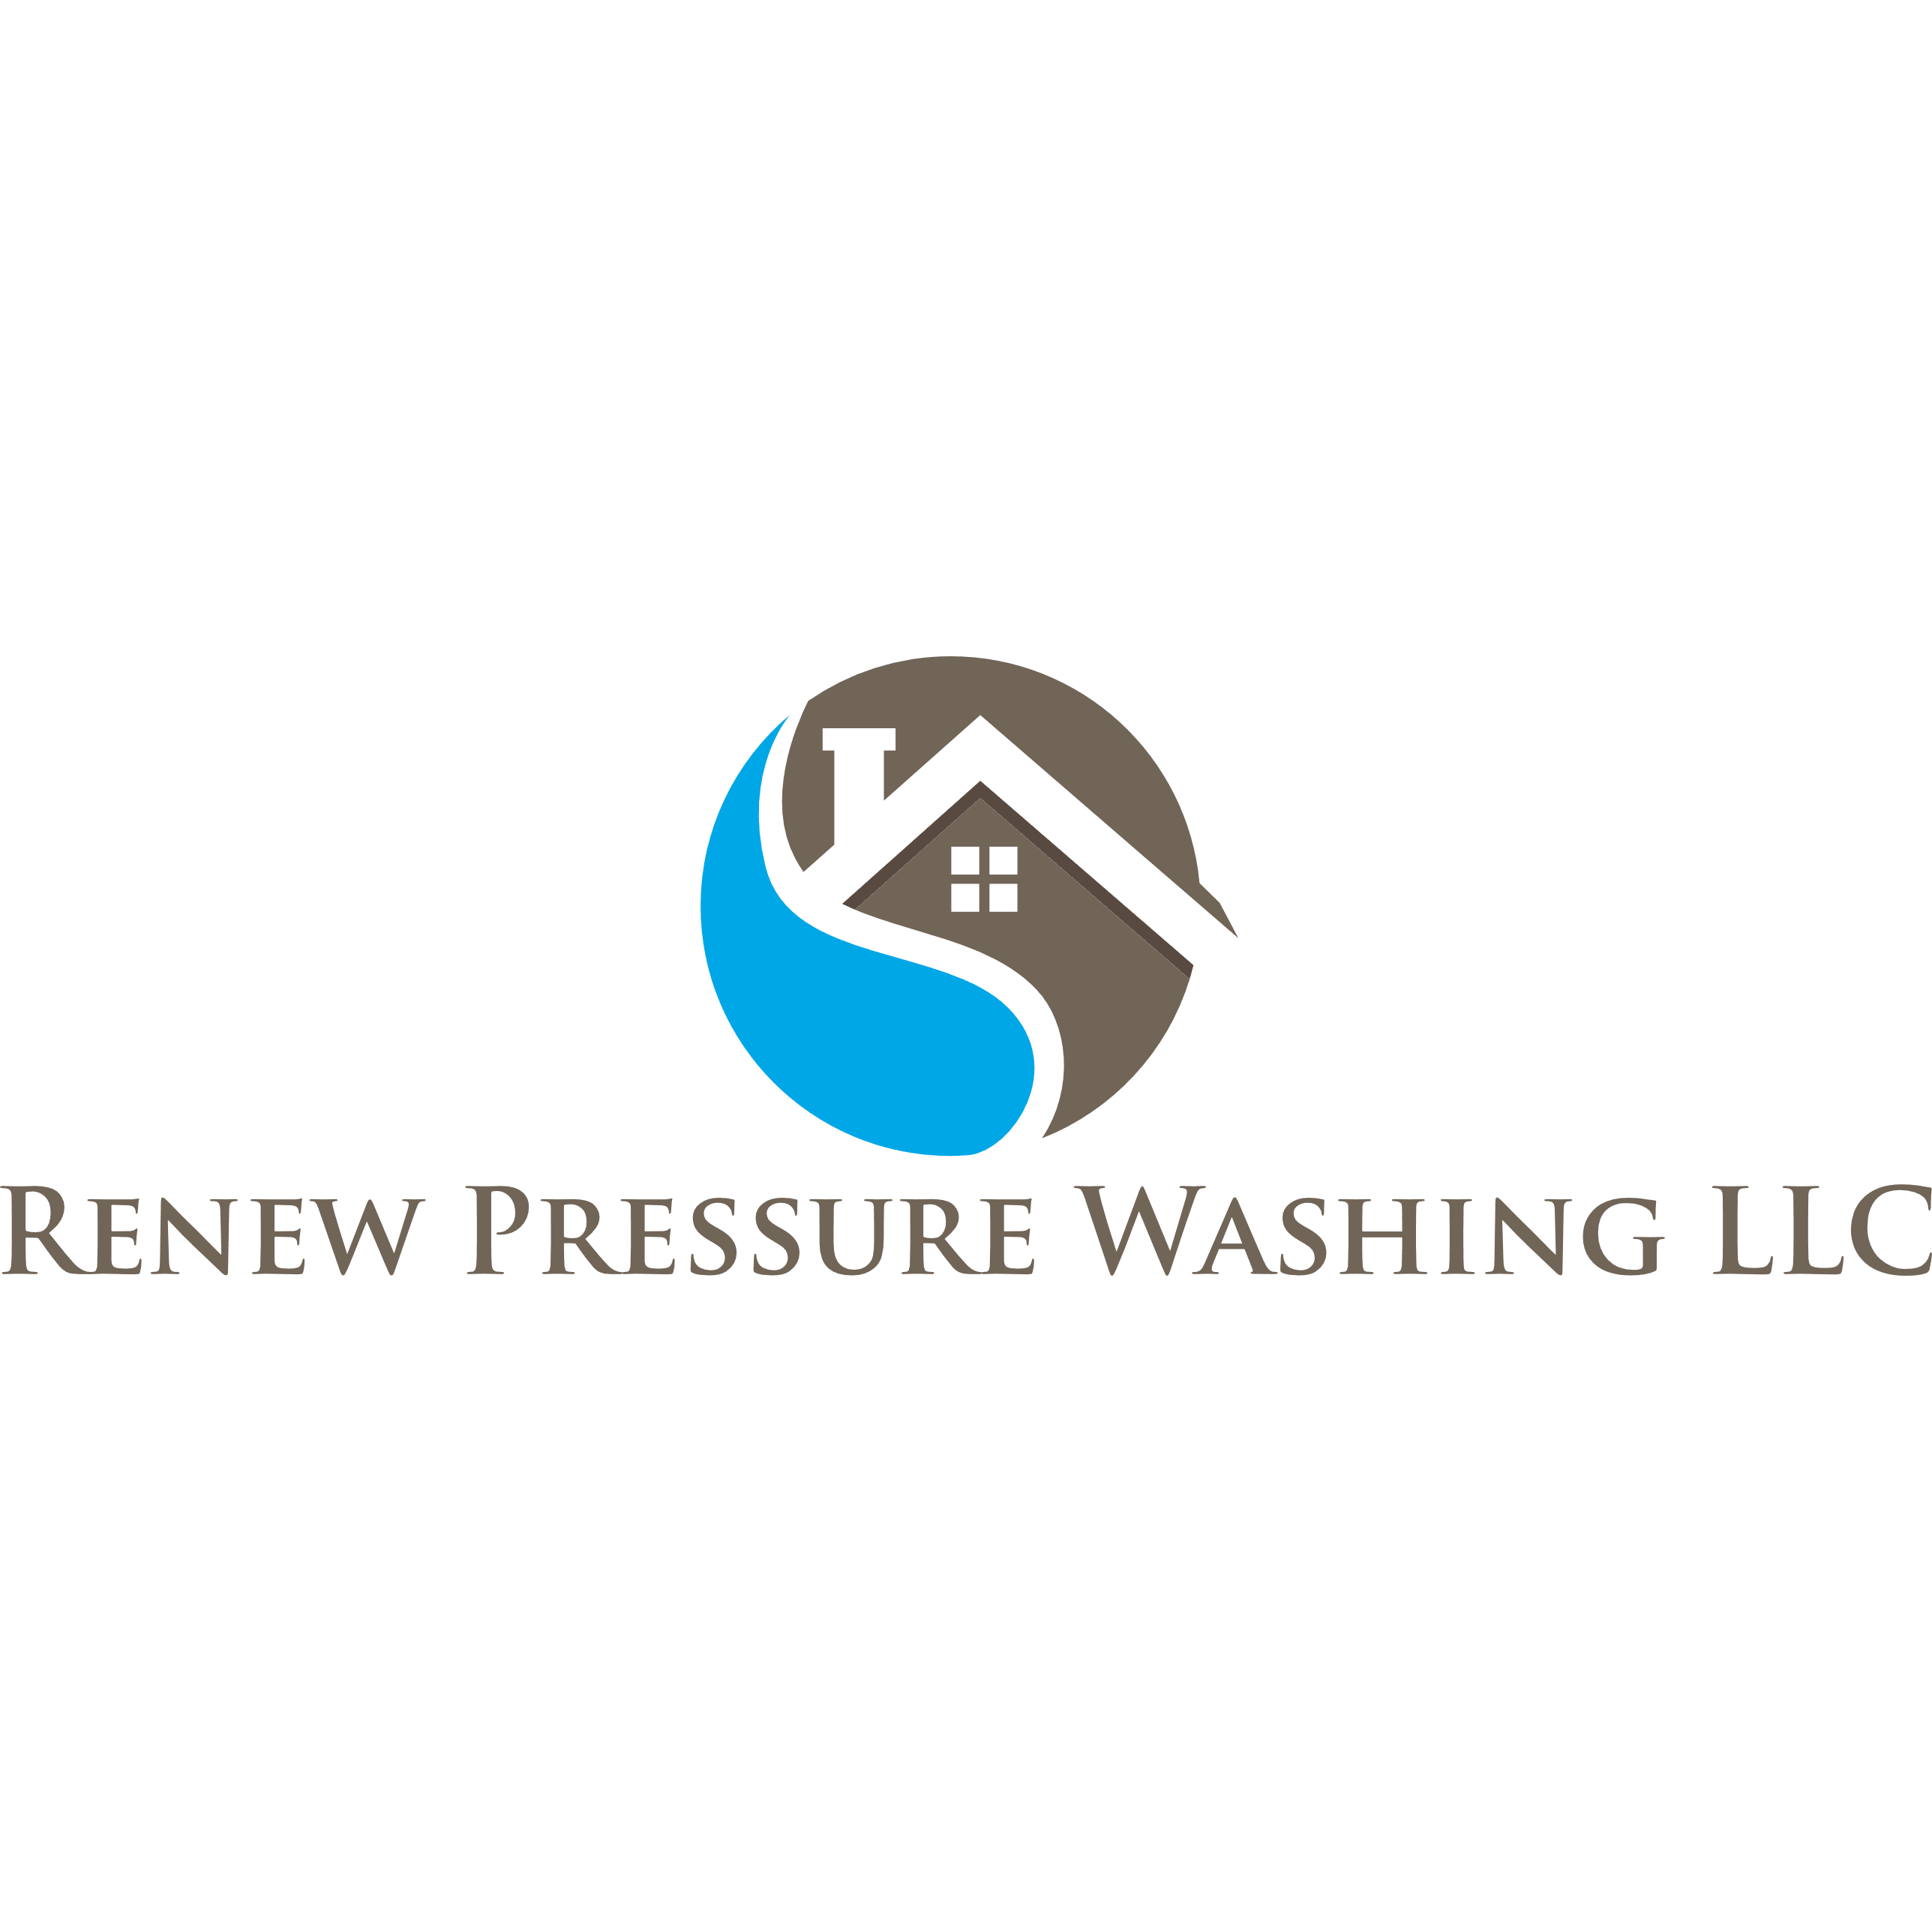 Renew Pressure Washing LLC - Iola, WI 54945 - (715)498-5532 | ShowMeLocal.com